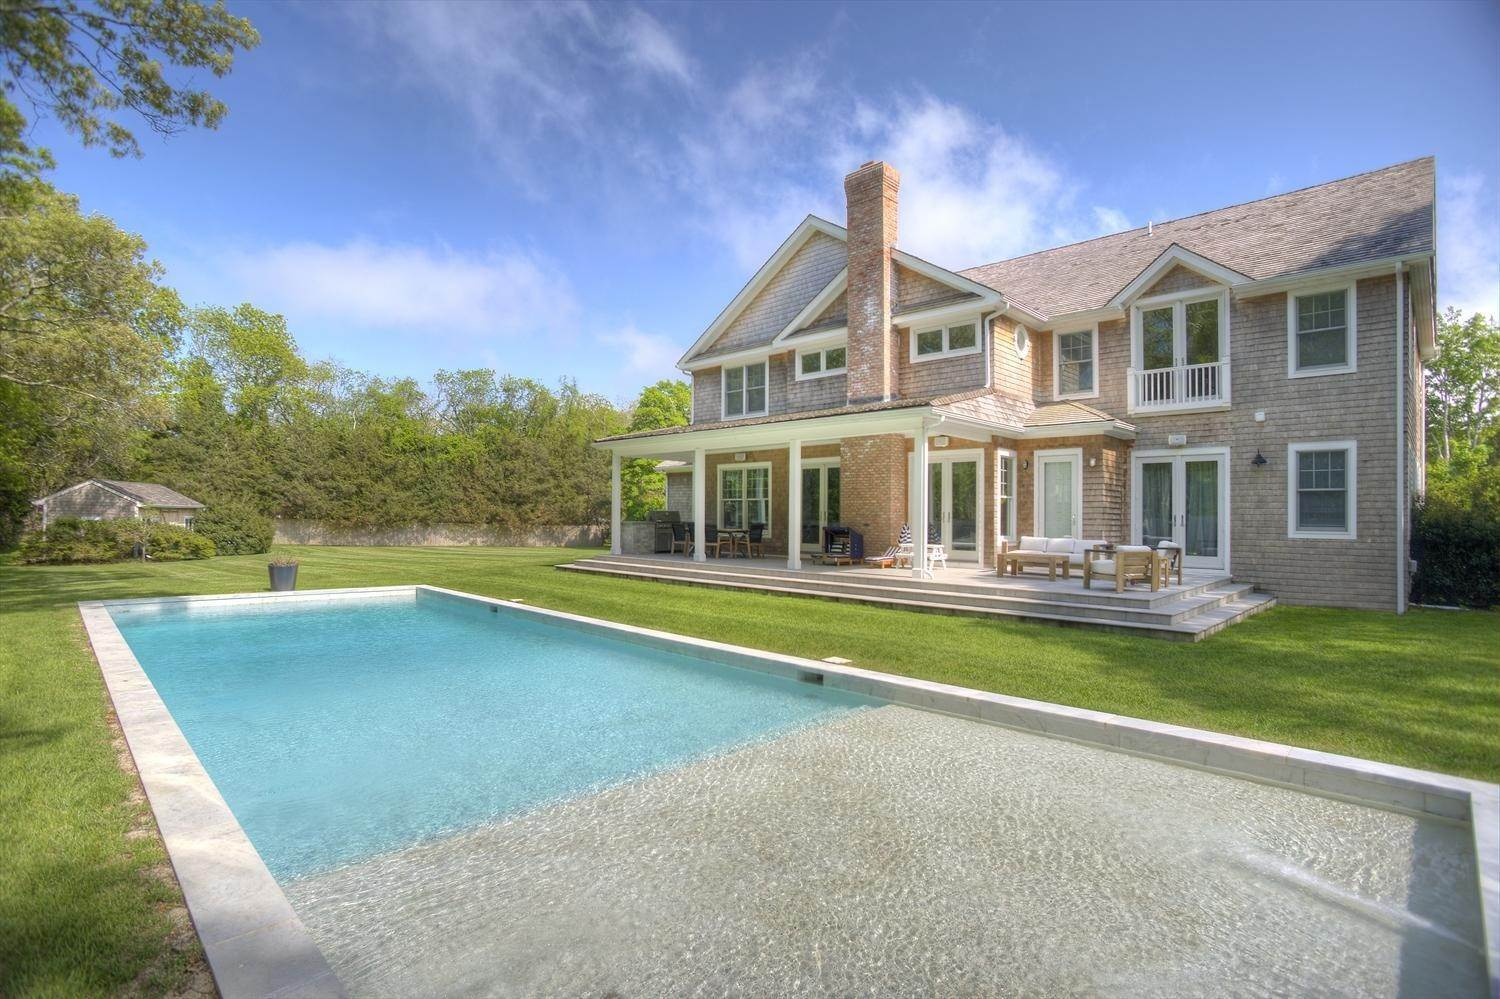 Single Family Home at Sumptuously Chic In Near North Water Mill 1028 Head Of Pond Road, Water Mill, NY 11976